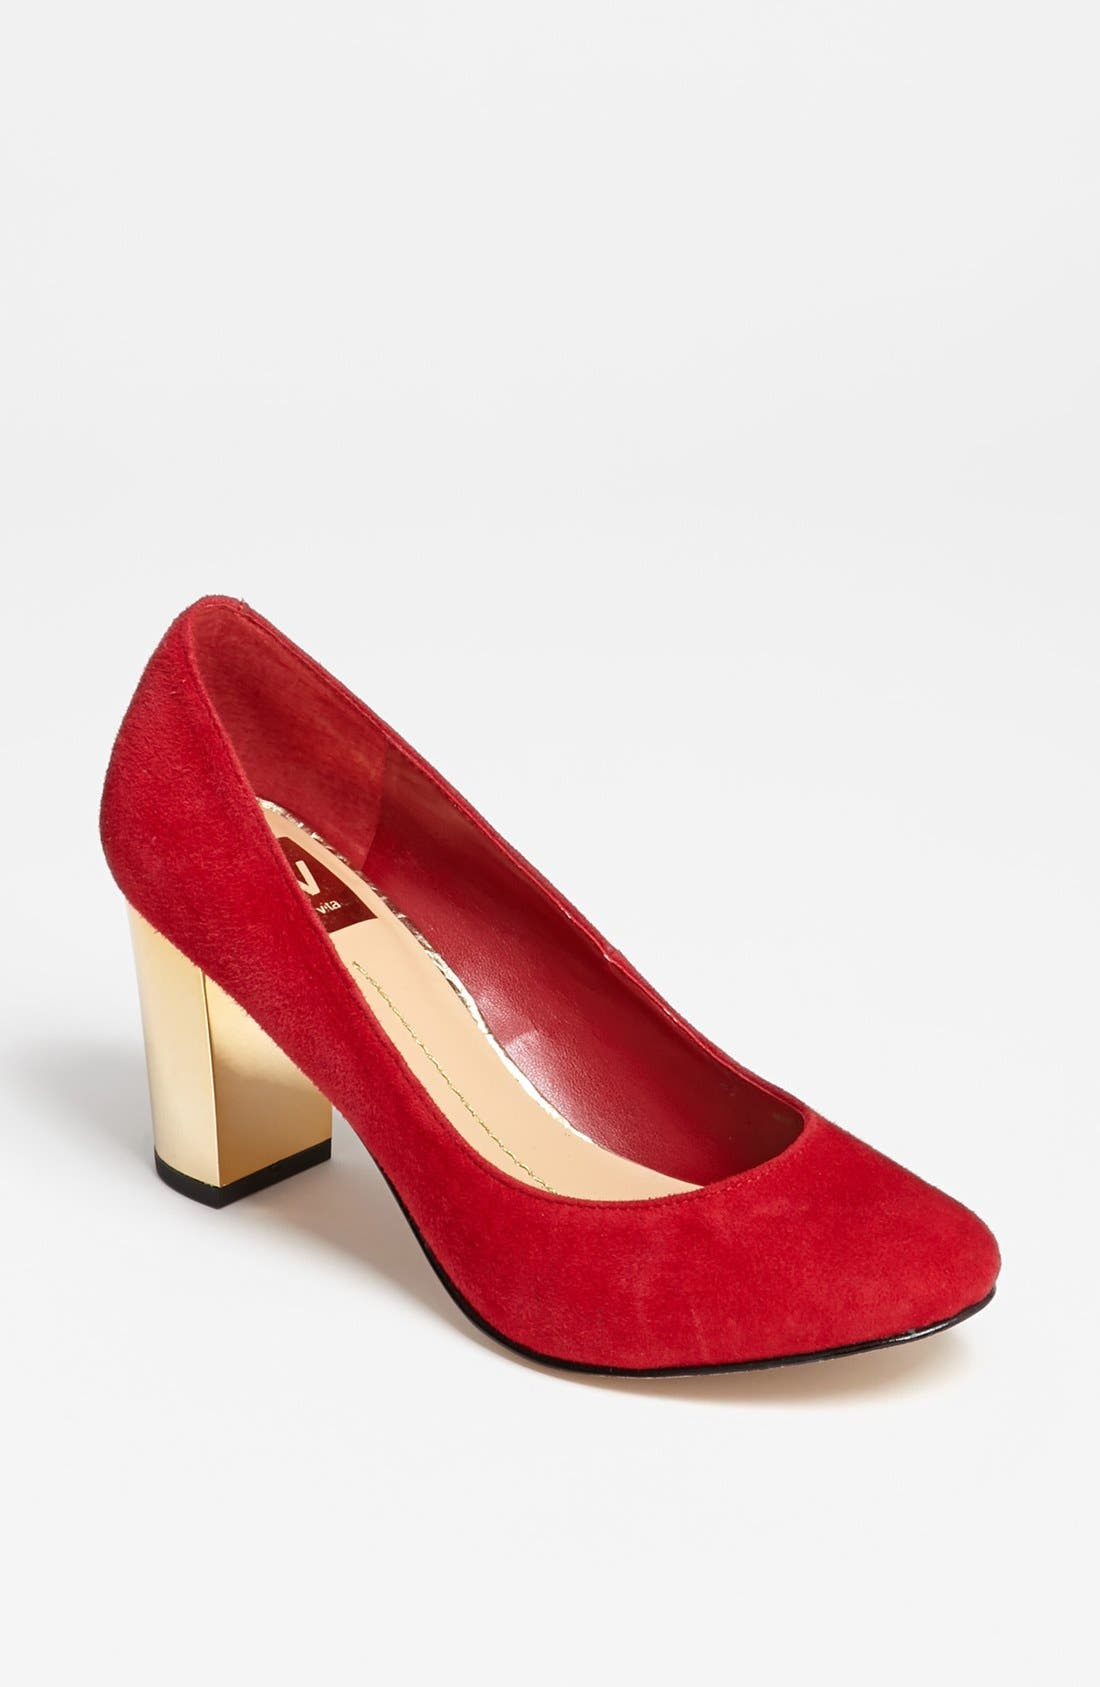 Alternate Image 1 Selected - DV by Dolce Vita 'Dollie' Pump